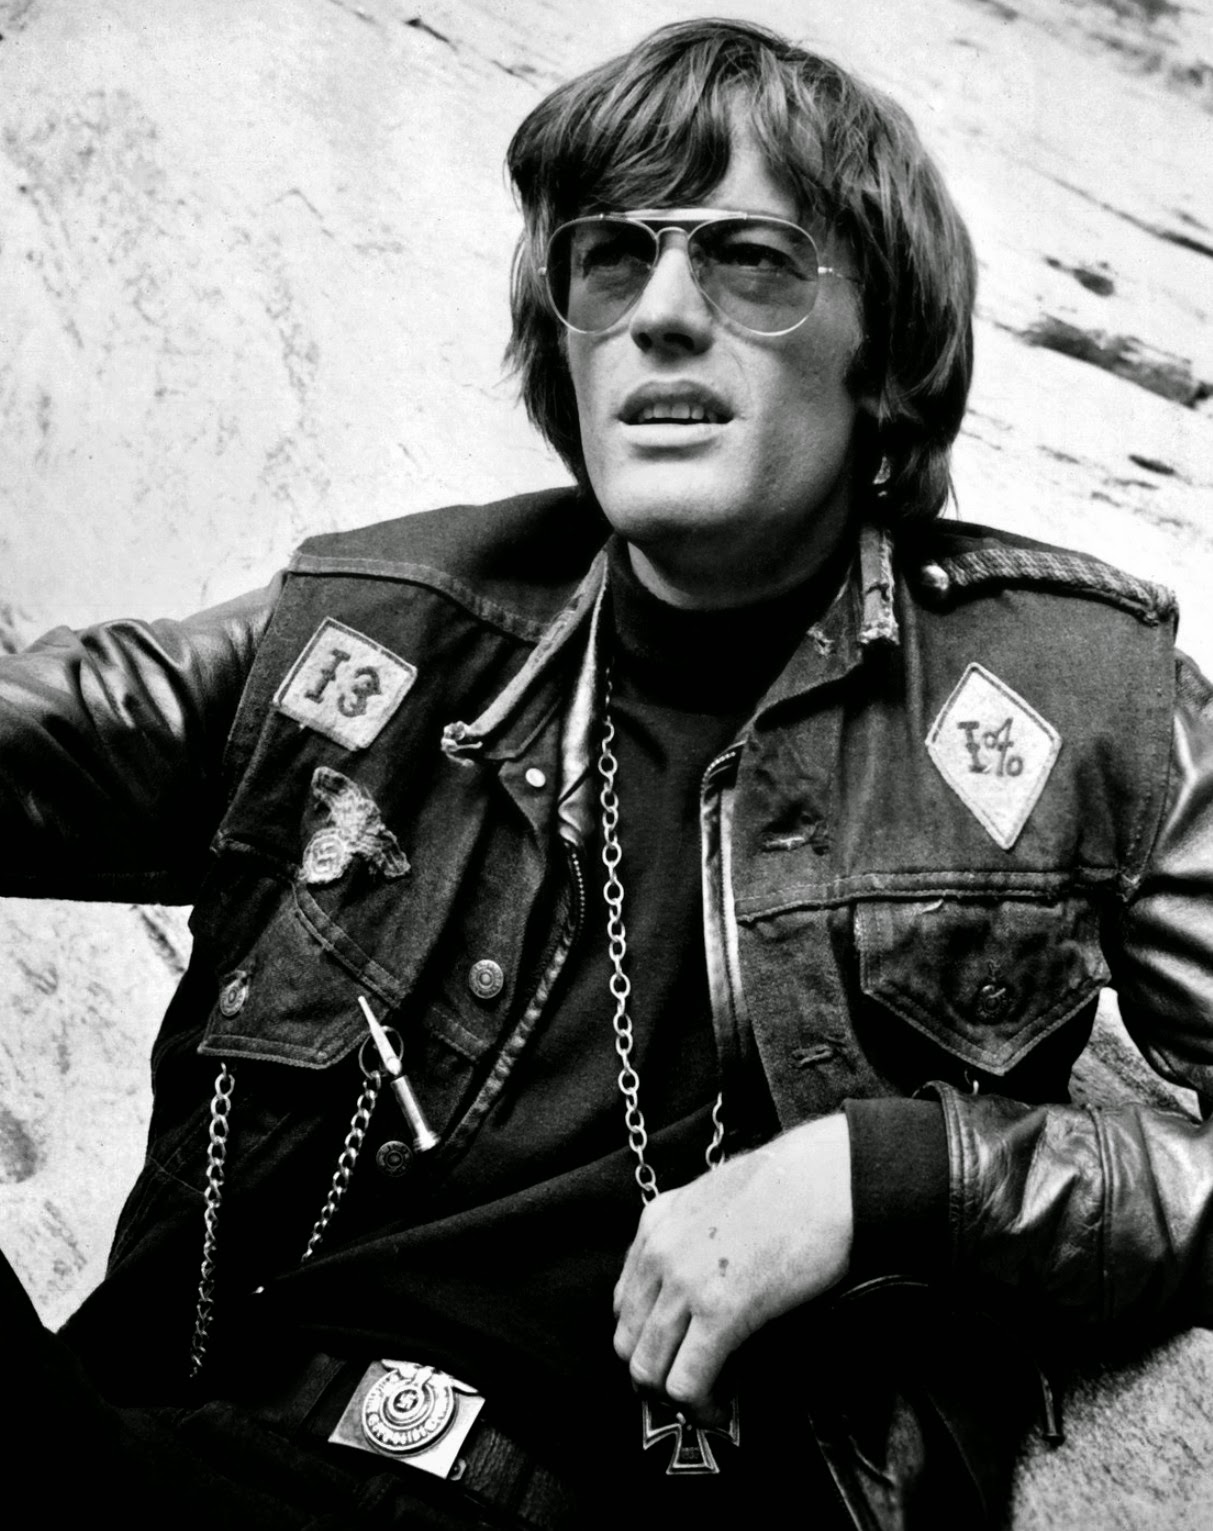 Peter Fonda in 70's Wearing Aviator Sunglasses